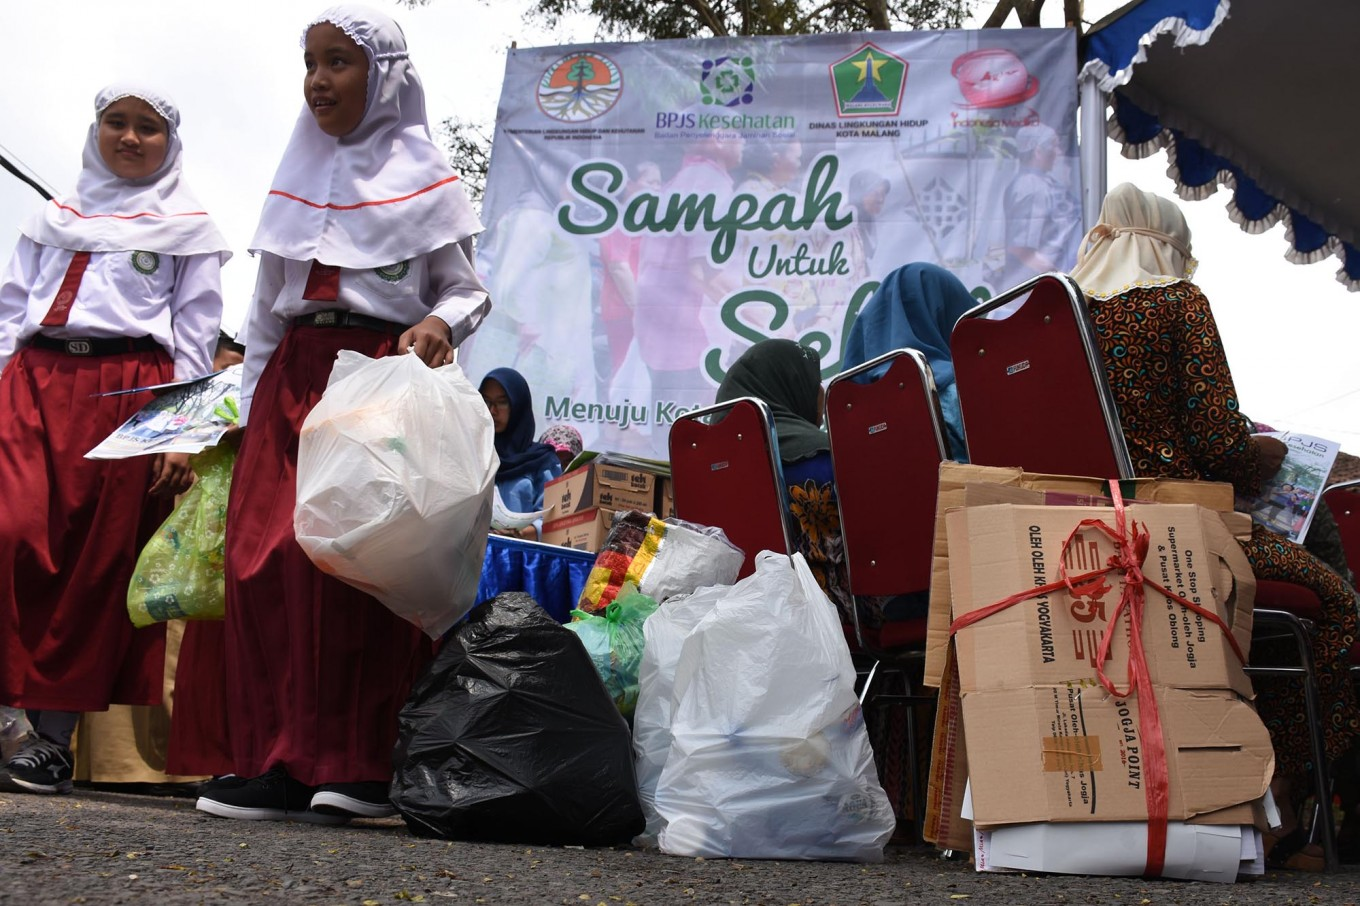 Primary school students and residents bring recyclable trash to get free healthcare services that could cover BPJS Kesehatan premiums. JP/Aman Rochman